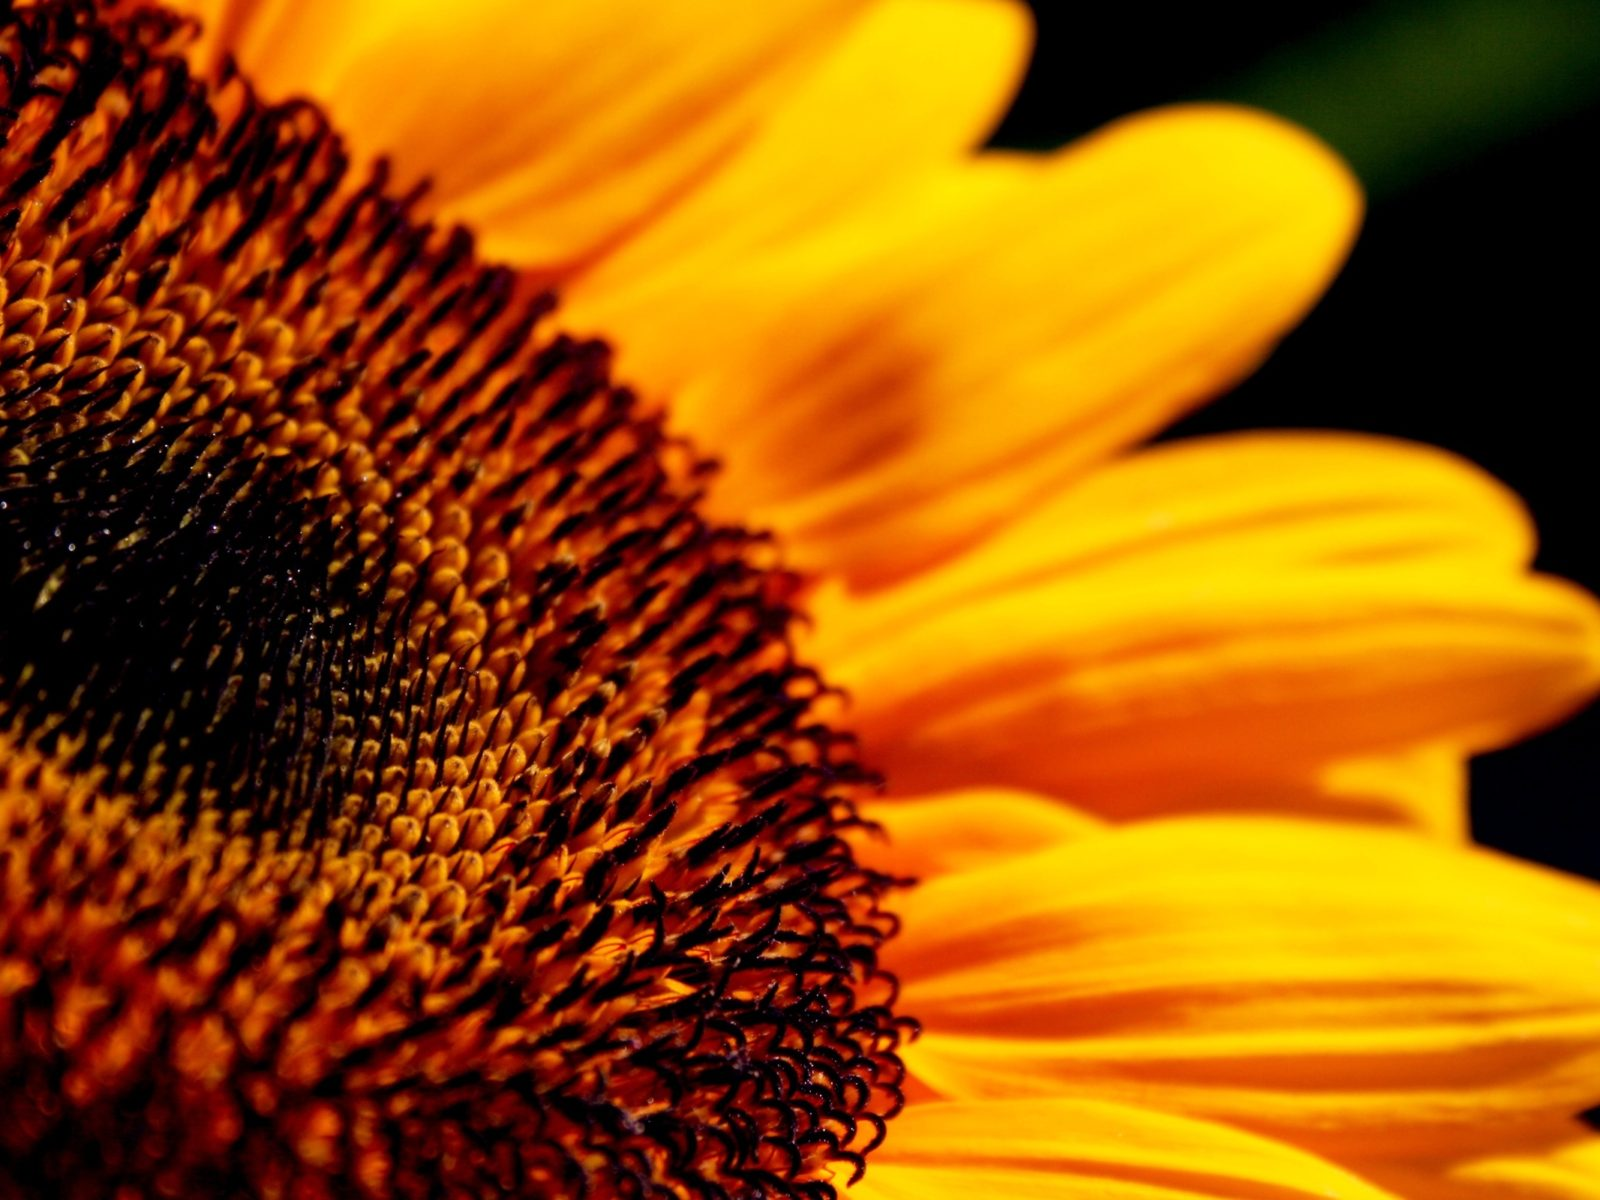 Hd Images Wallpaper Free Download Sunflower Flower Close Up High Definition 2560x1600